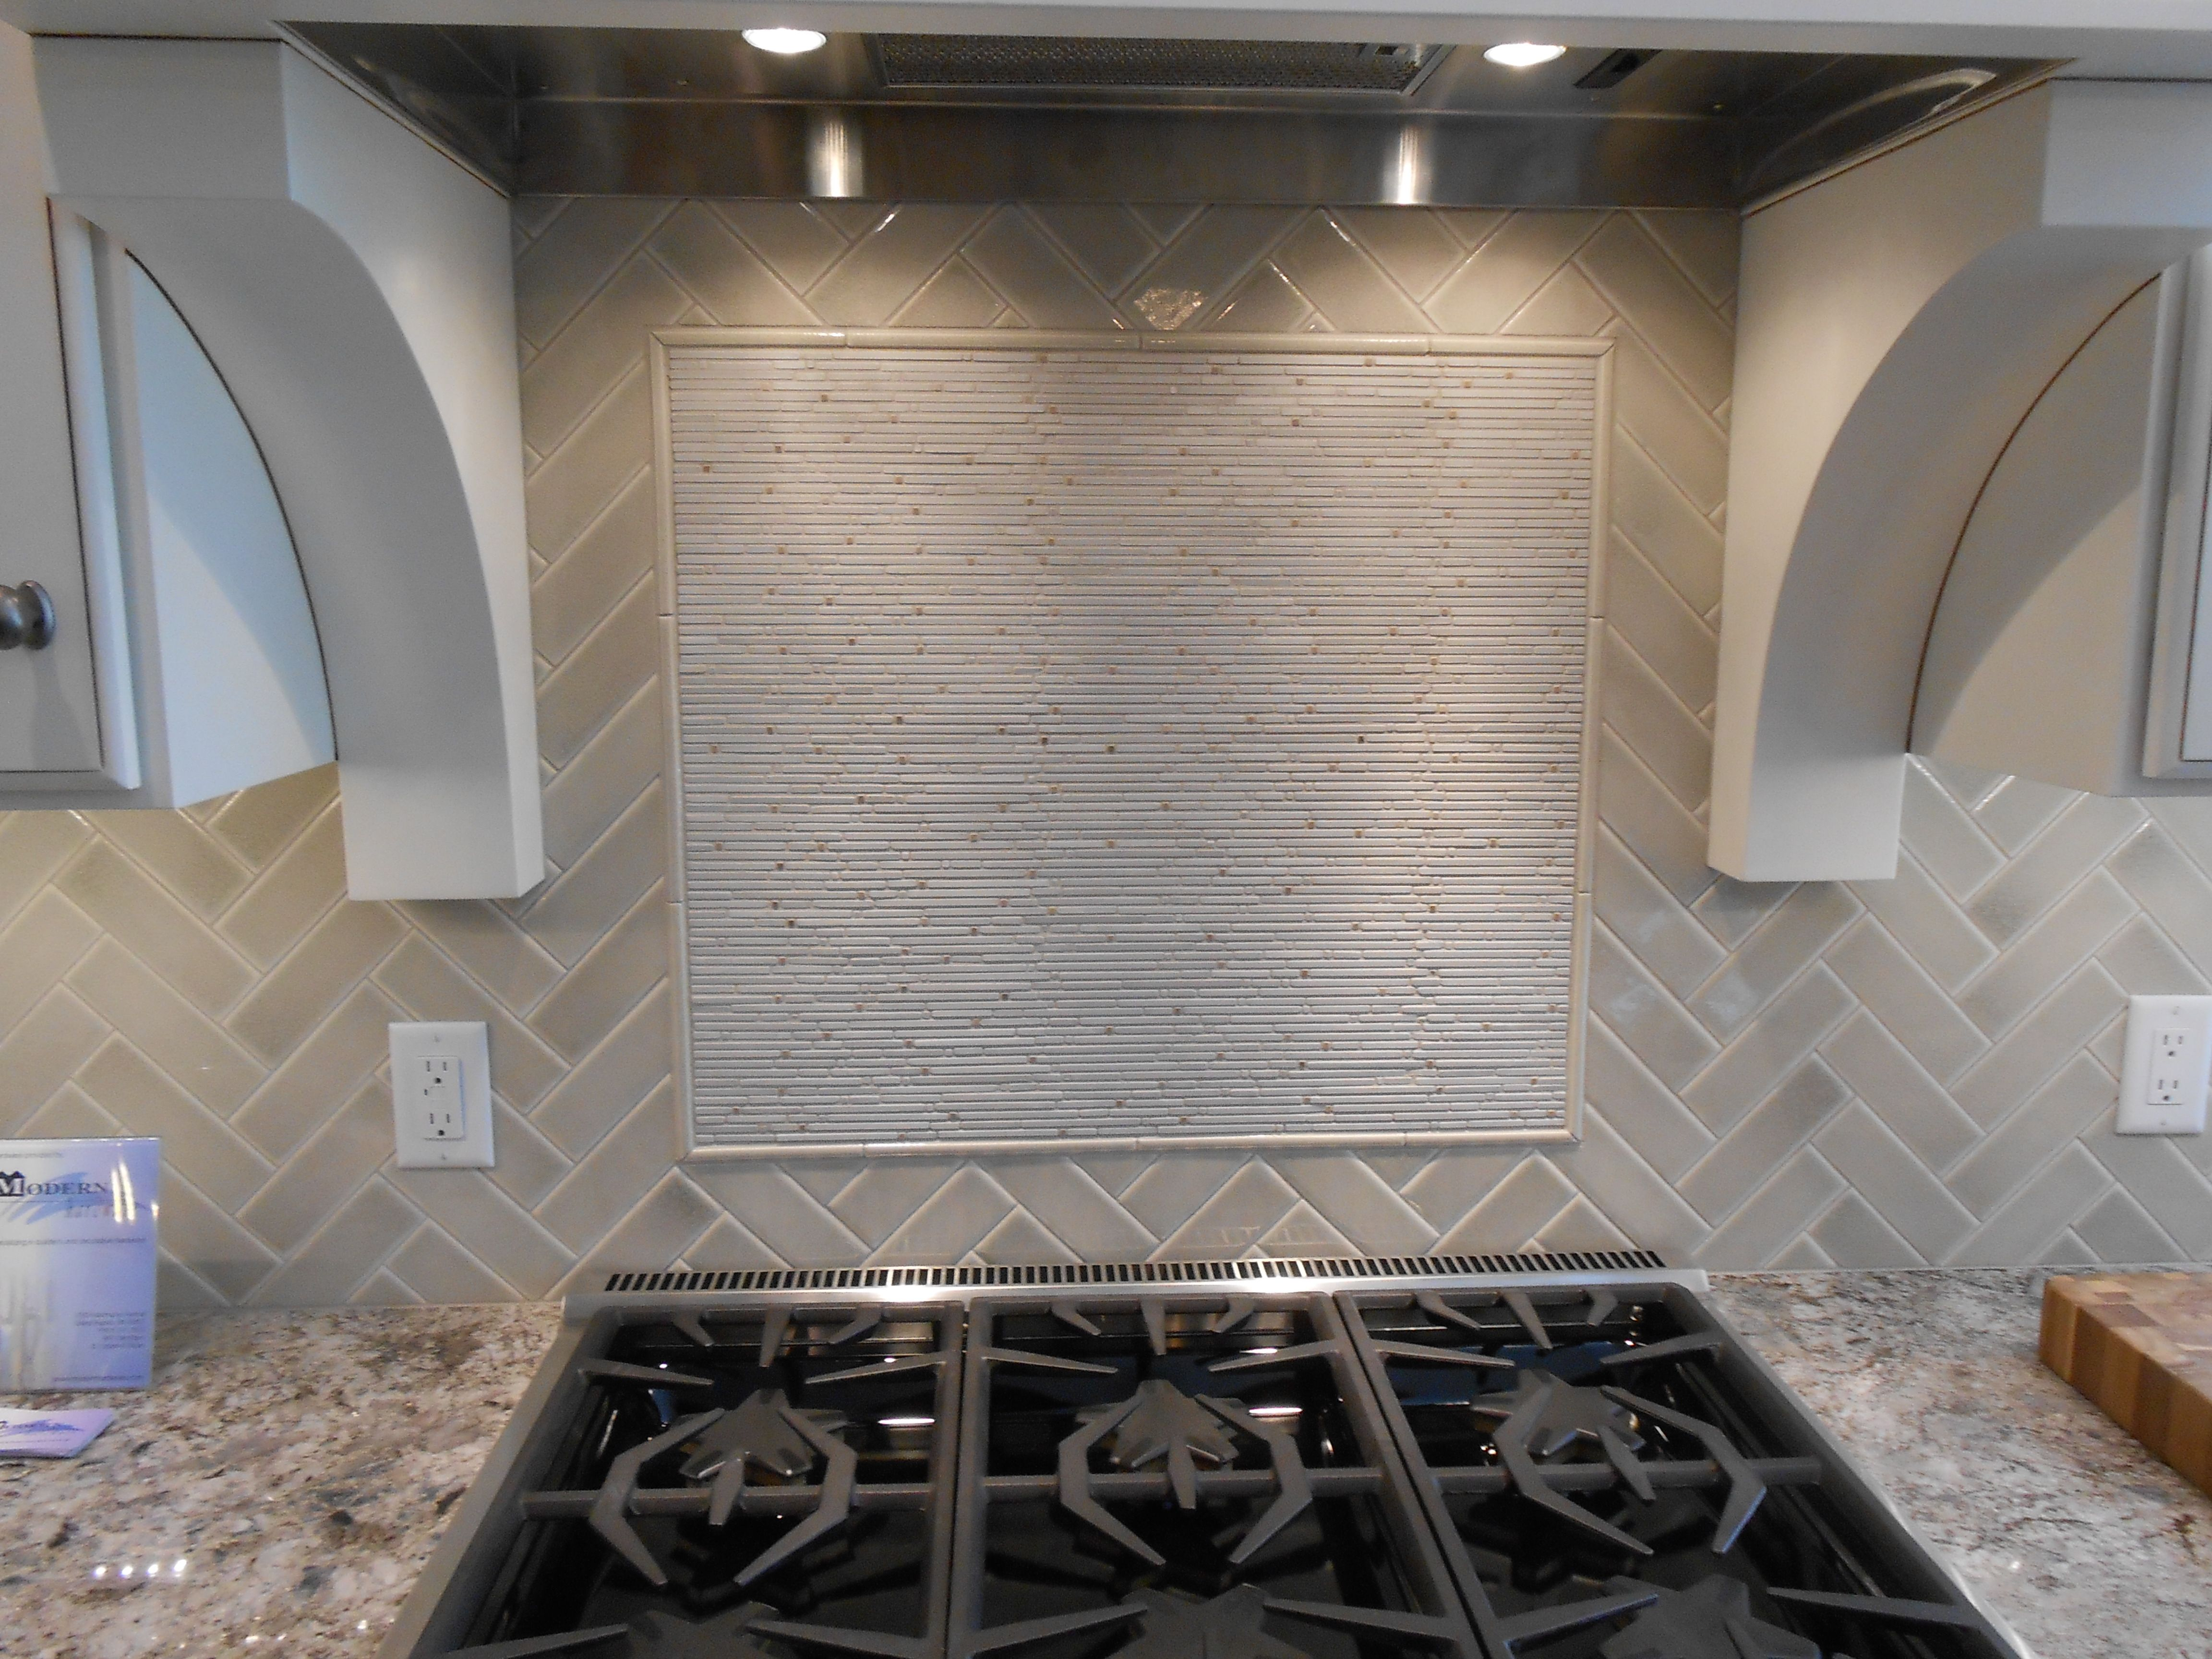 Herringbone tile with accent feature over stove | Backsplash ...